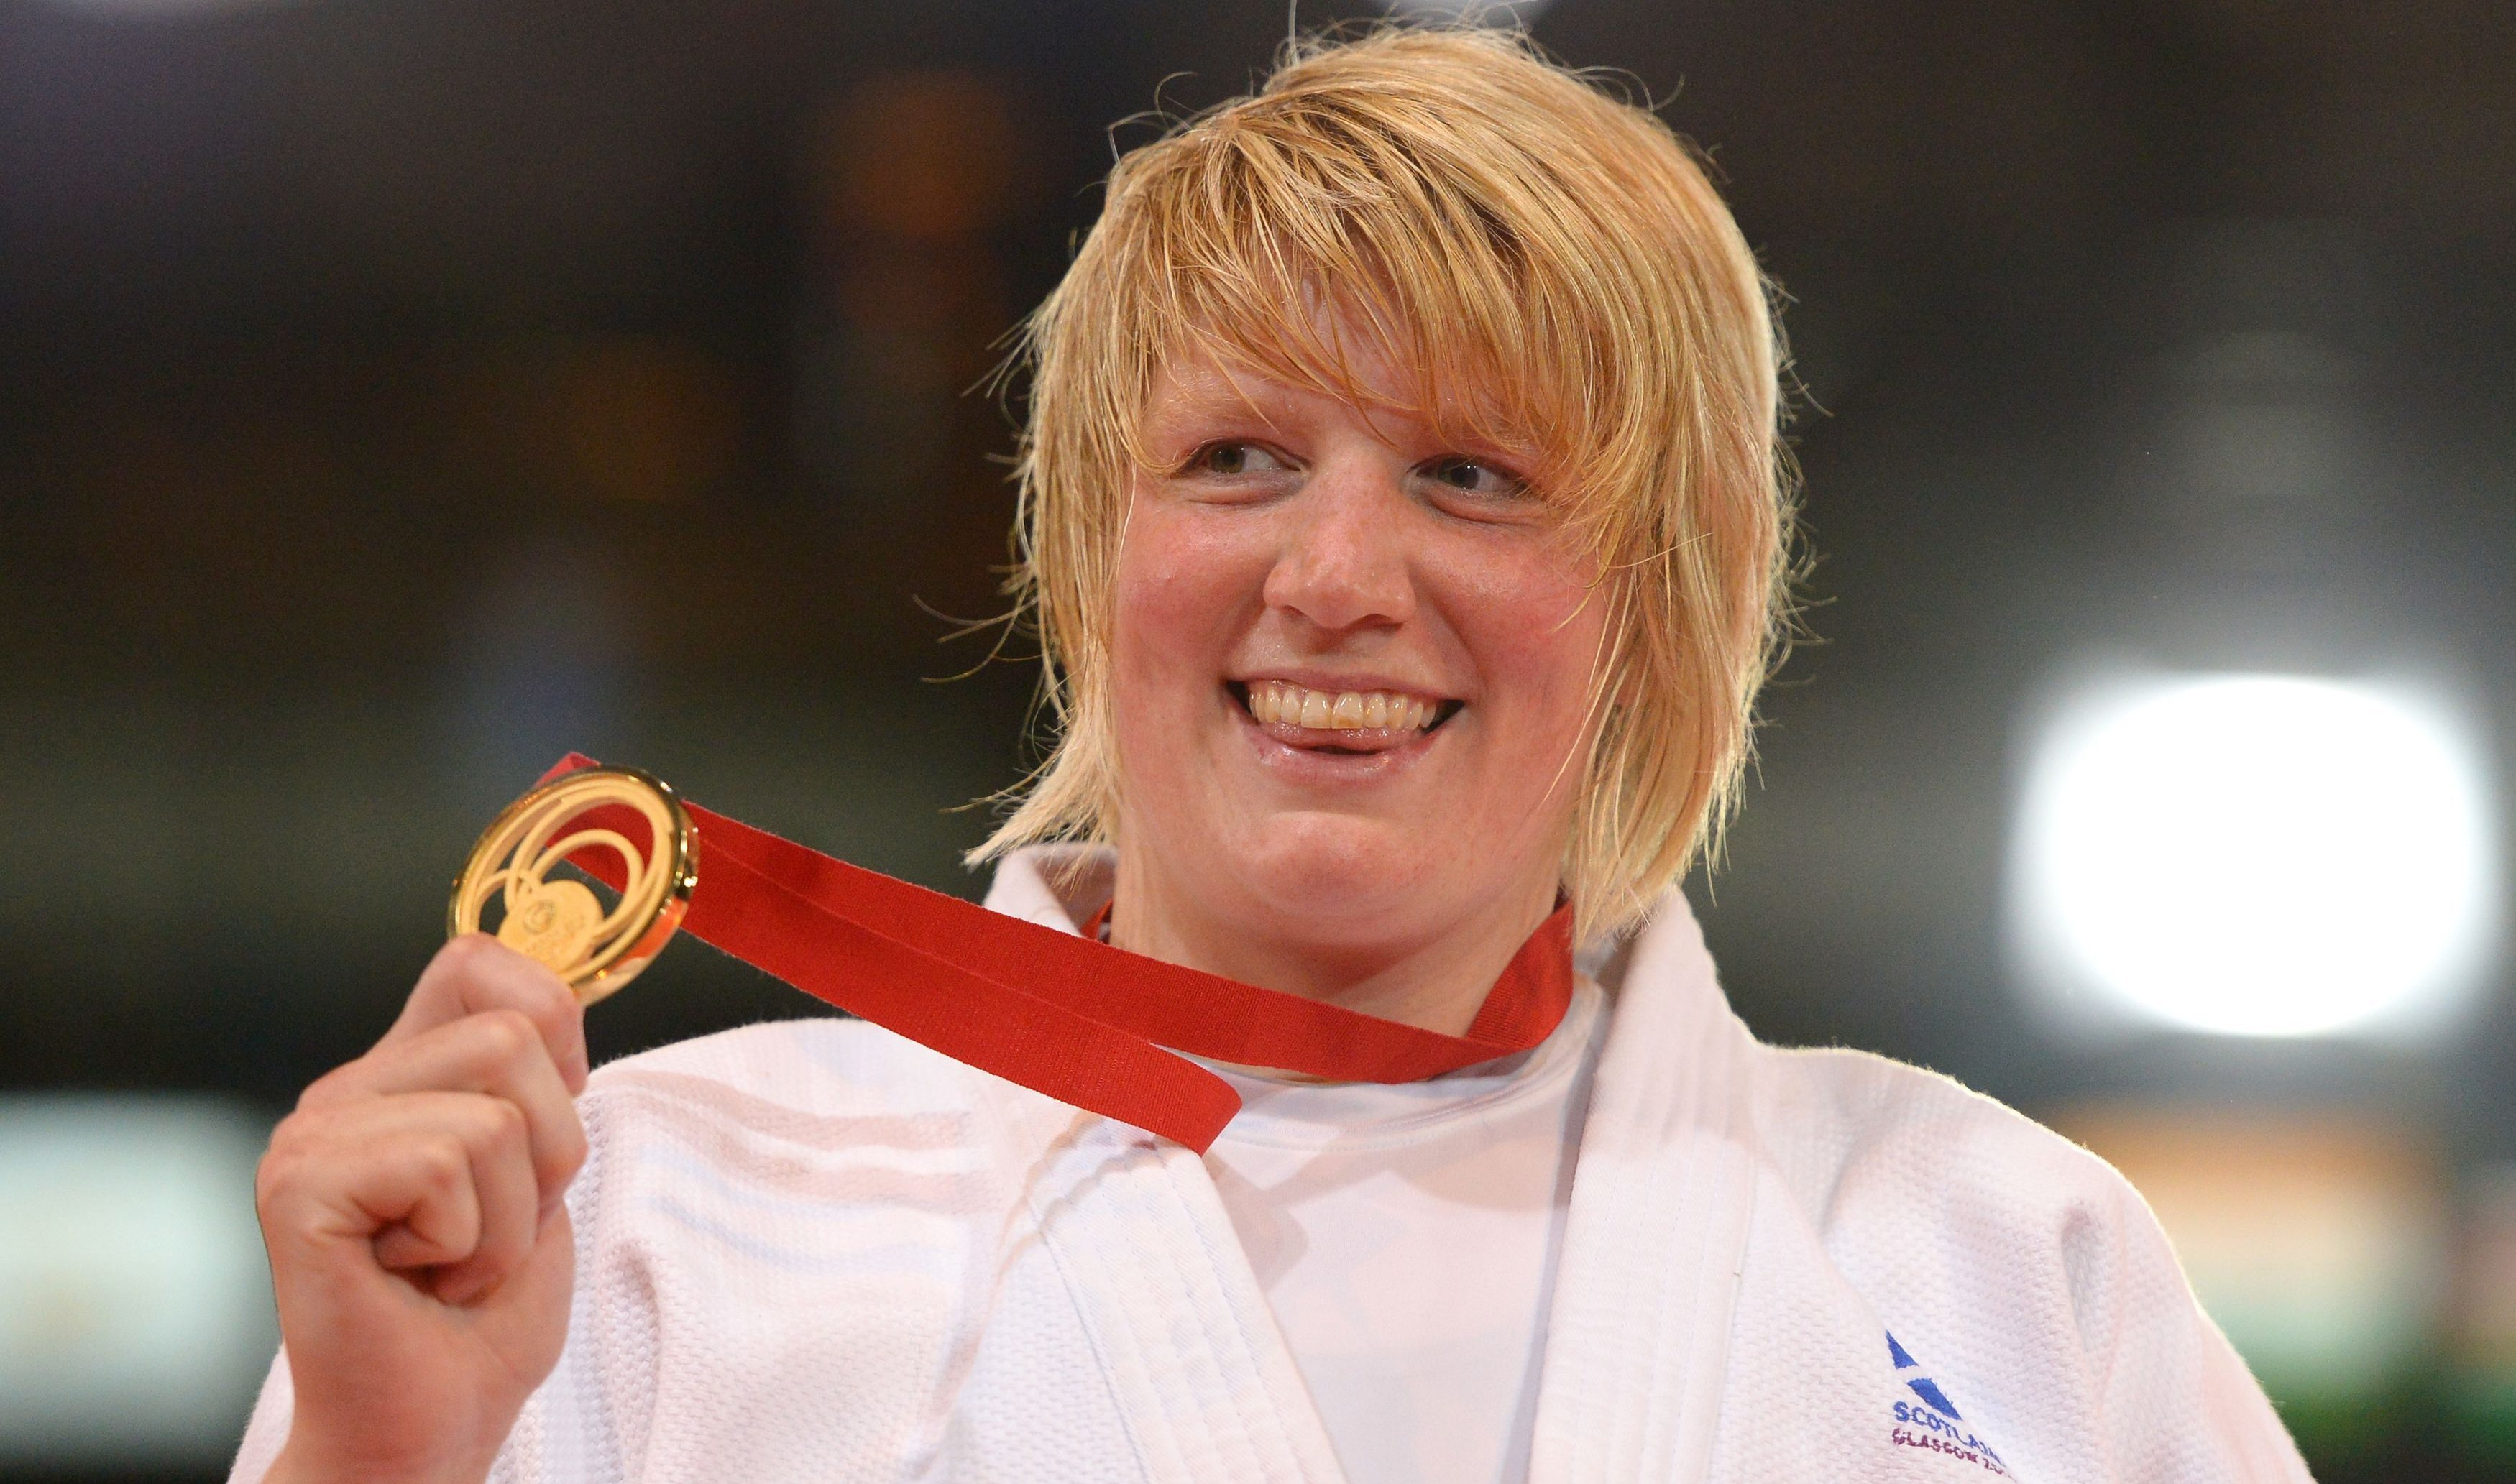 Gold medal winner Scotland's Sarah Adlington after her Women's +78kg Gold Medal Judo contest at the SECC during the 2014 Commonwealth Games in Glasgow.